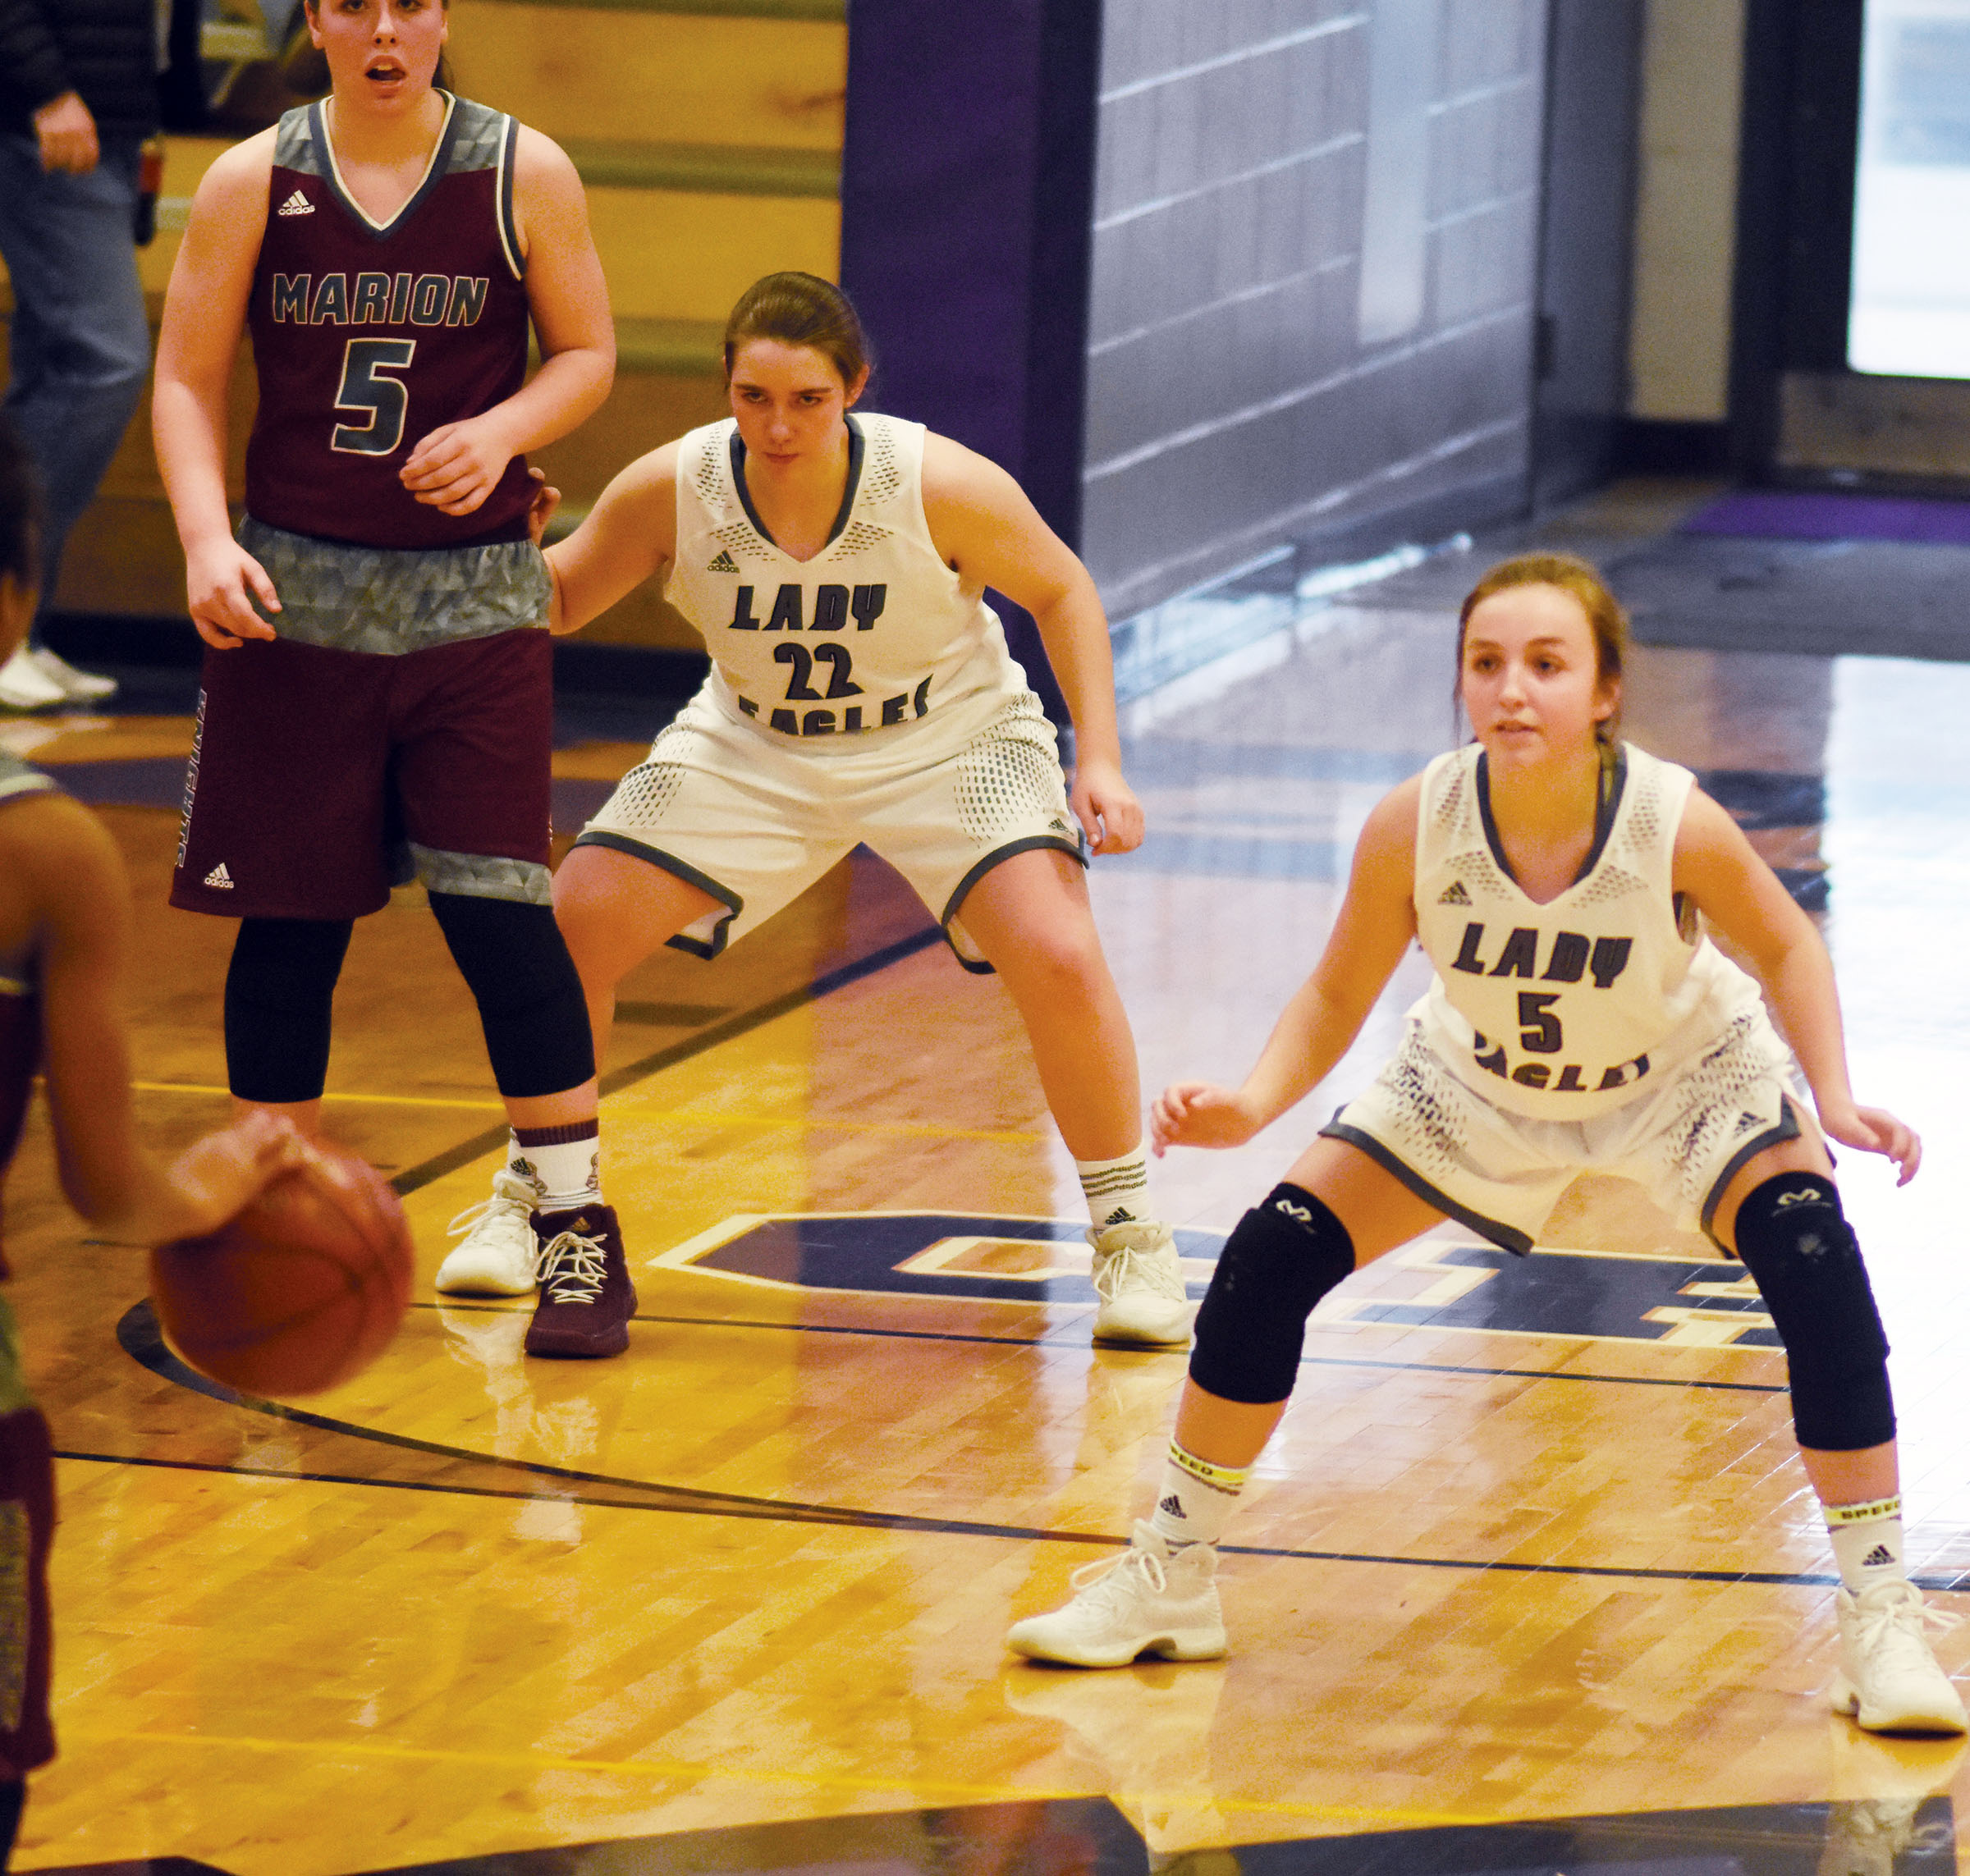 CHS freshman Abi Wiedewitsch, at left, and Campbellsville Middle School eighth-grader Lainey Watson play defense.